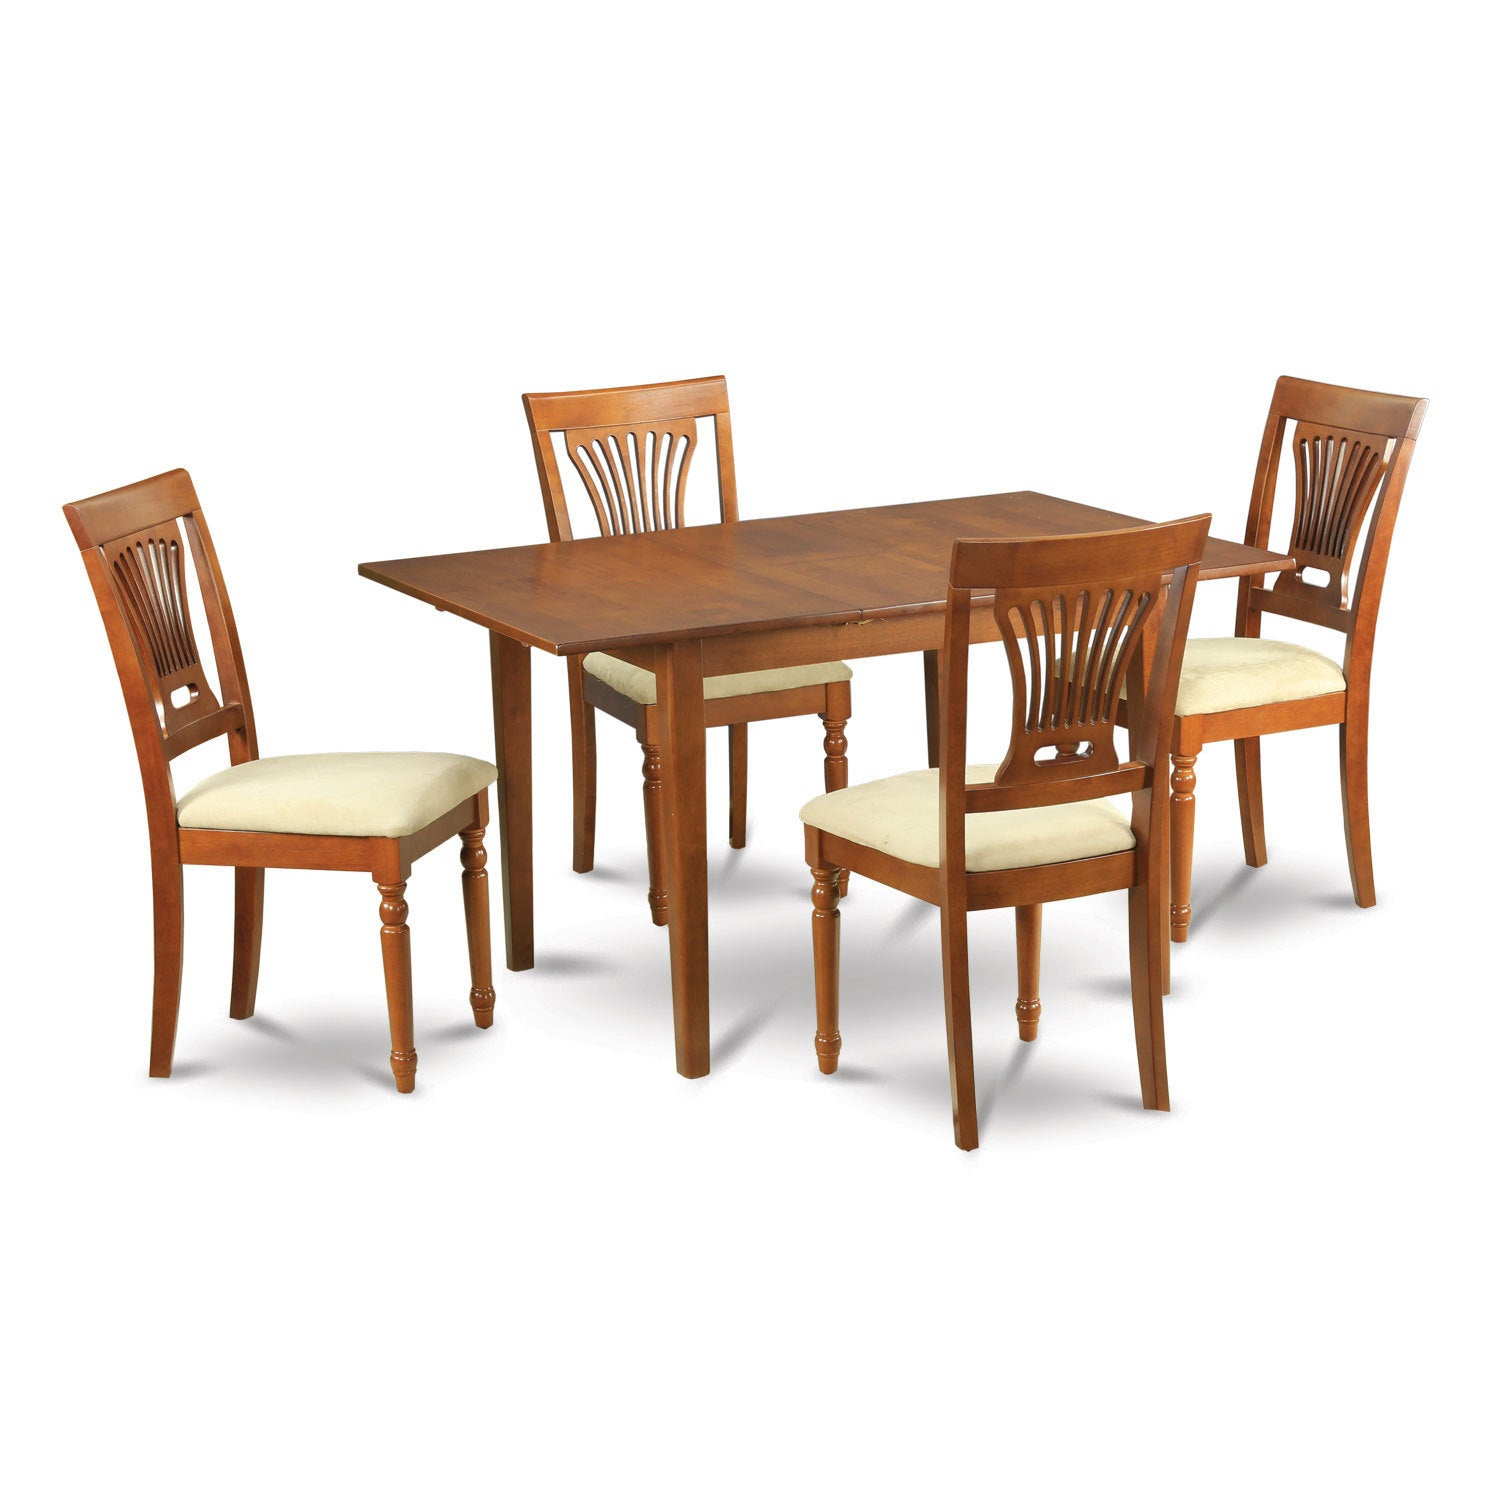 5-piece Small Dining Table and 4 Kitchen Chairs (Microfib...